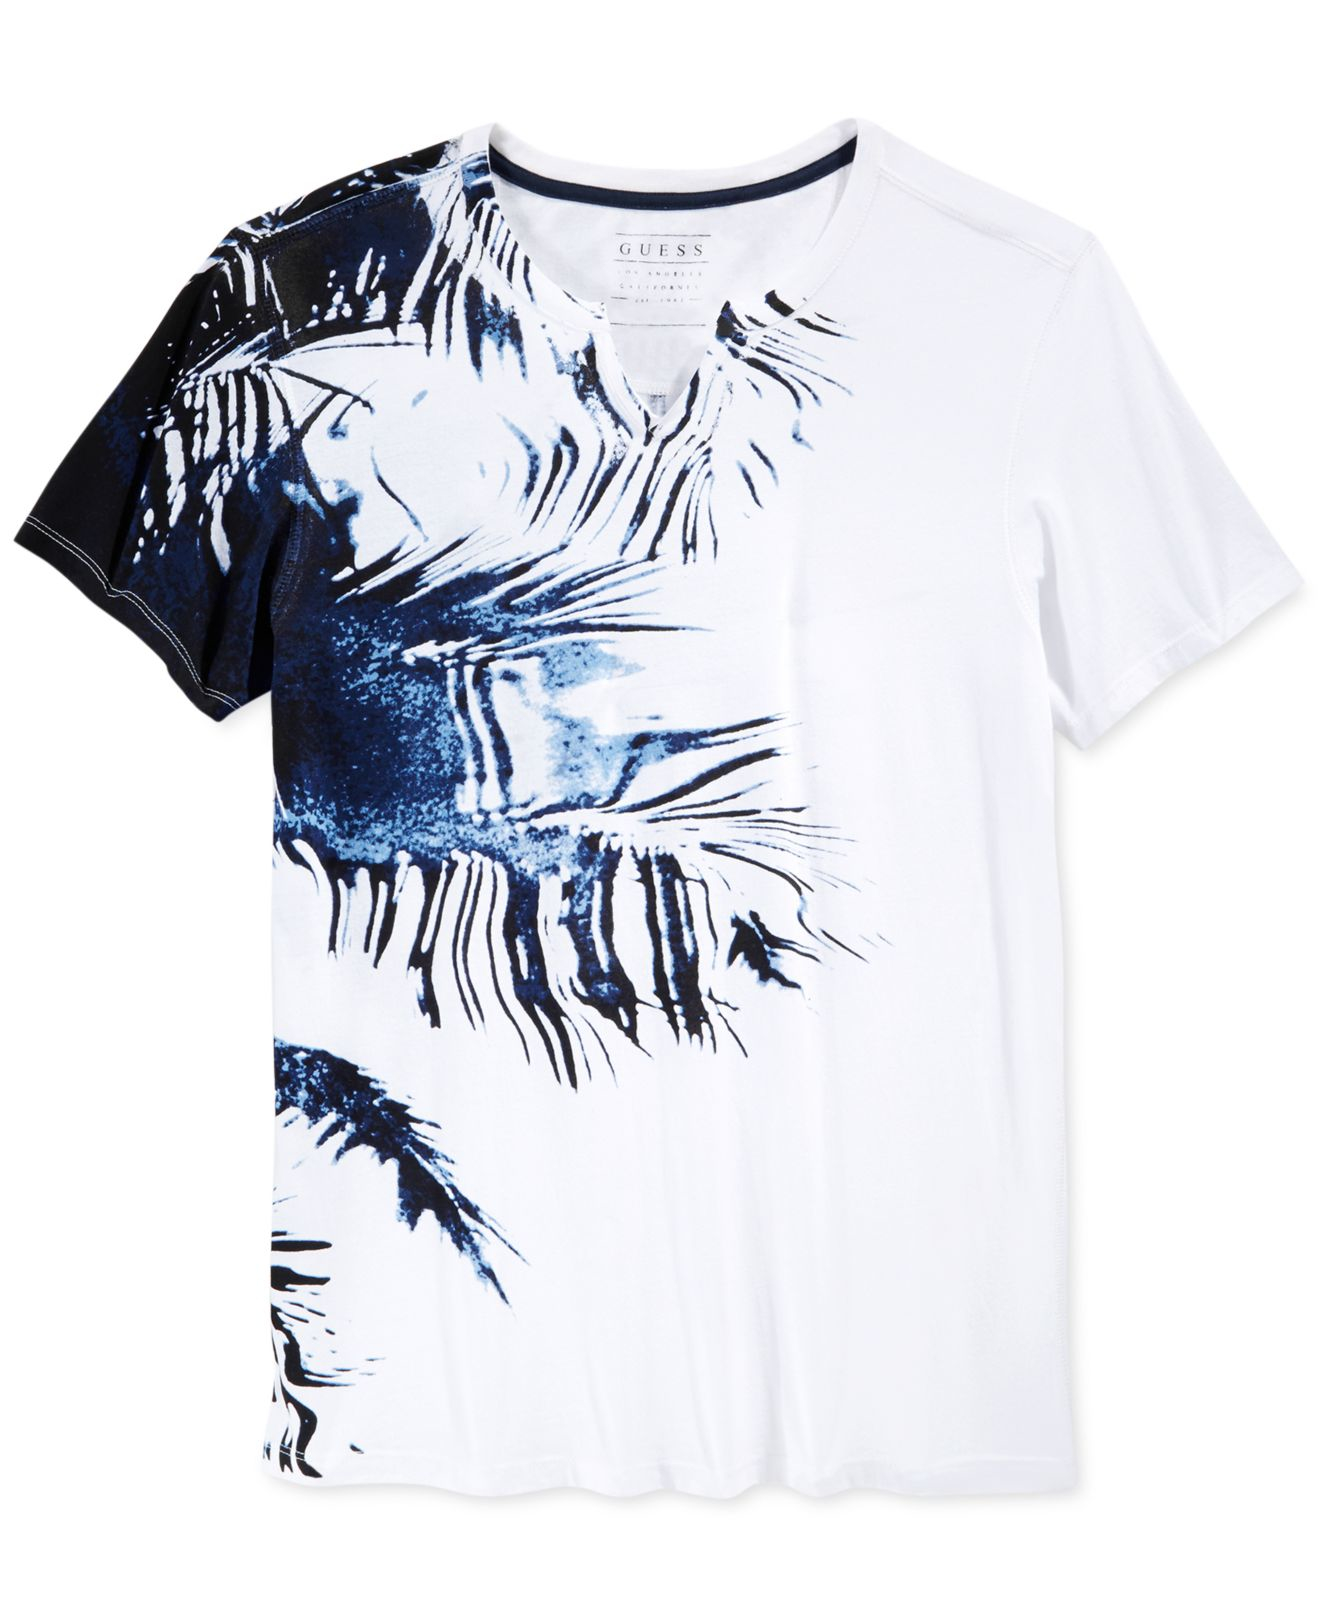 lyst guess stream palm t shirt in white for men. Black Bedroom Furniture Sets. Home Design Ideas